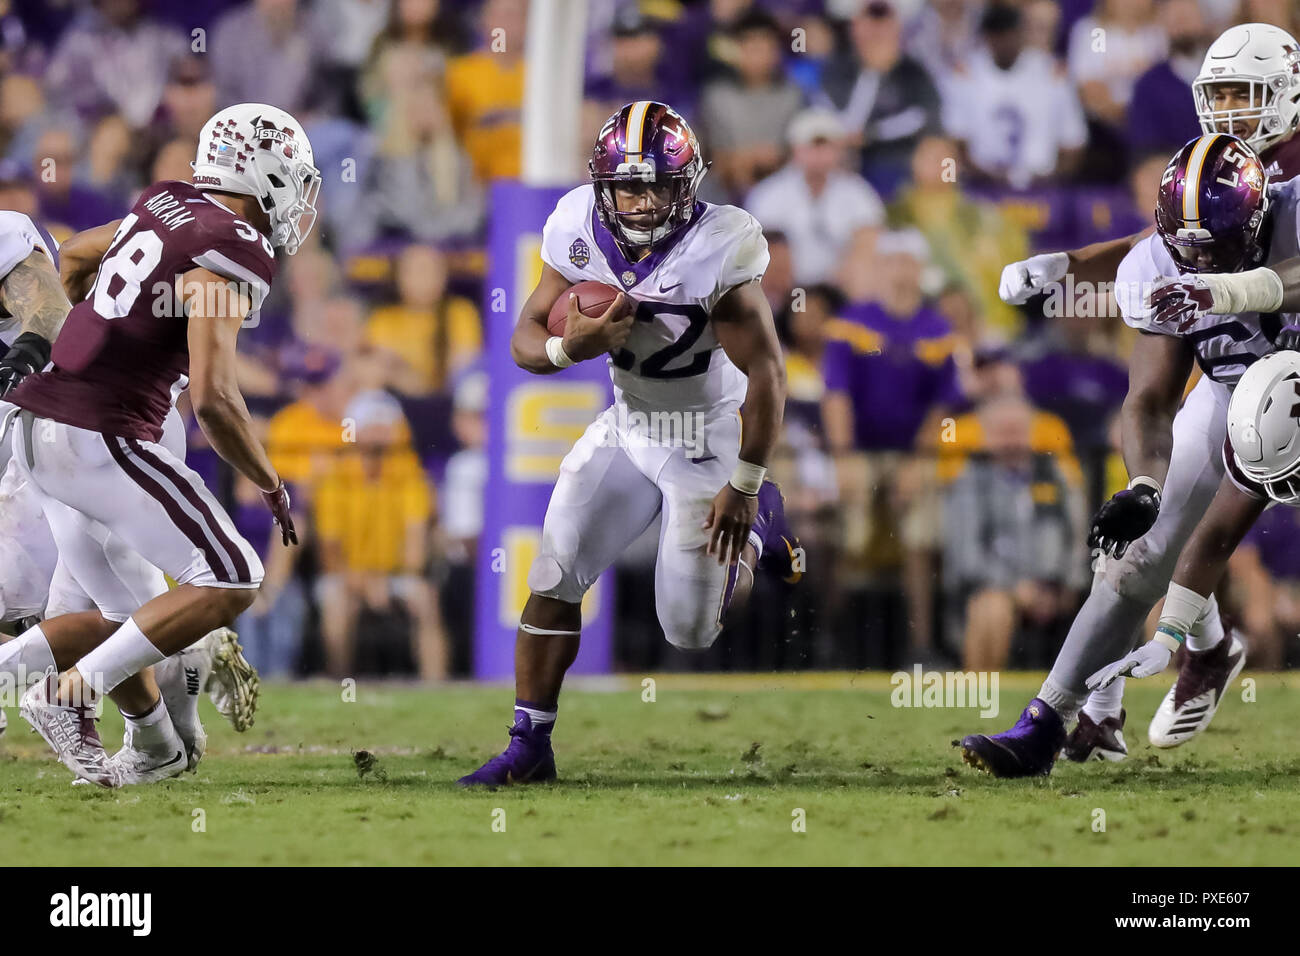 LSU Tigers running back Clyde Edwards-Helaire (22) runs during the game  between the LSU Tigers and Mississippi State Bulldogs at Tiger Stadium in  Baton ... 3785b1a10